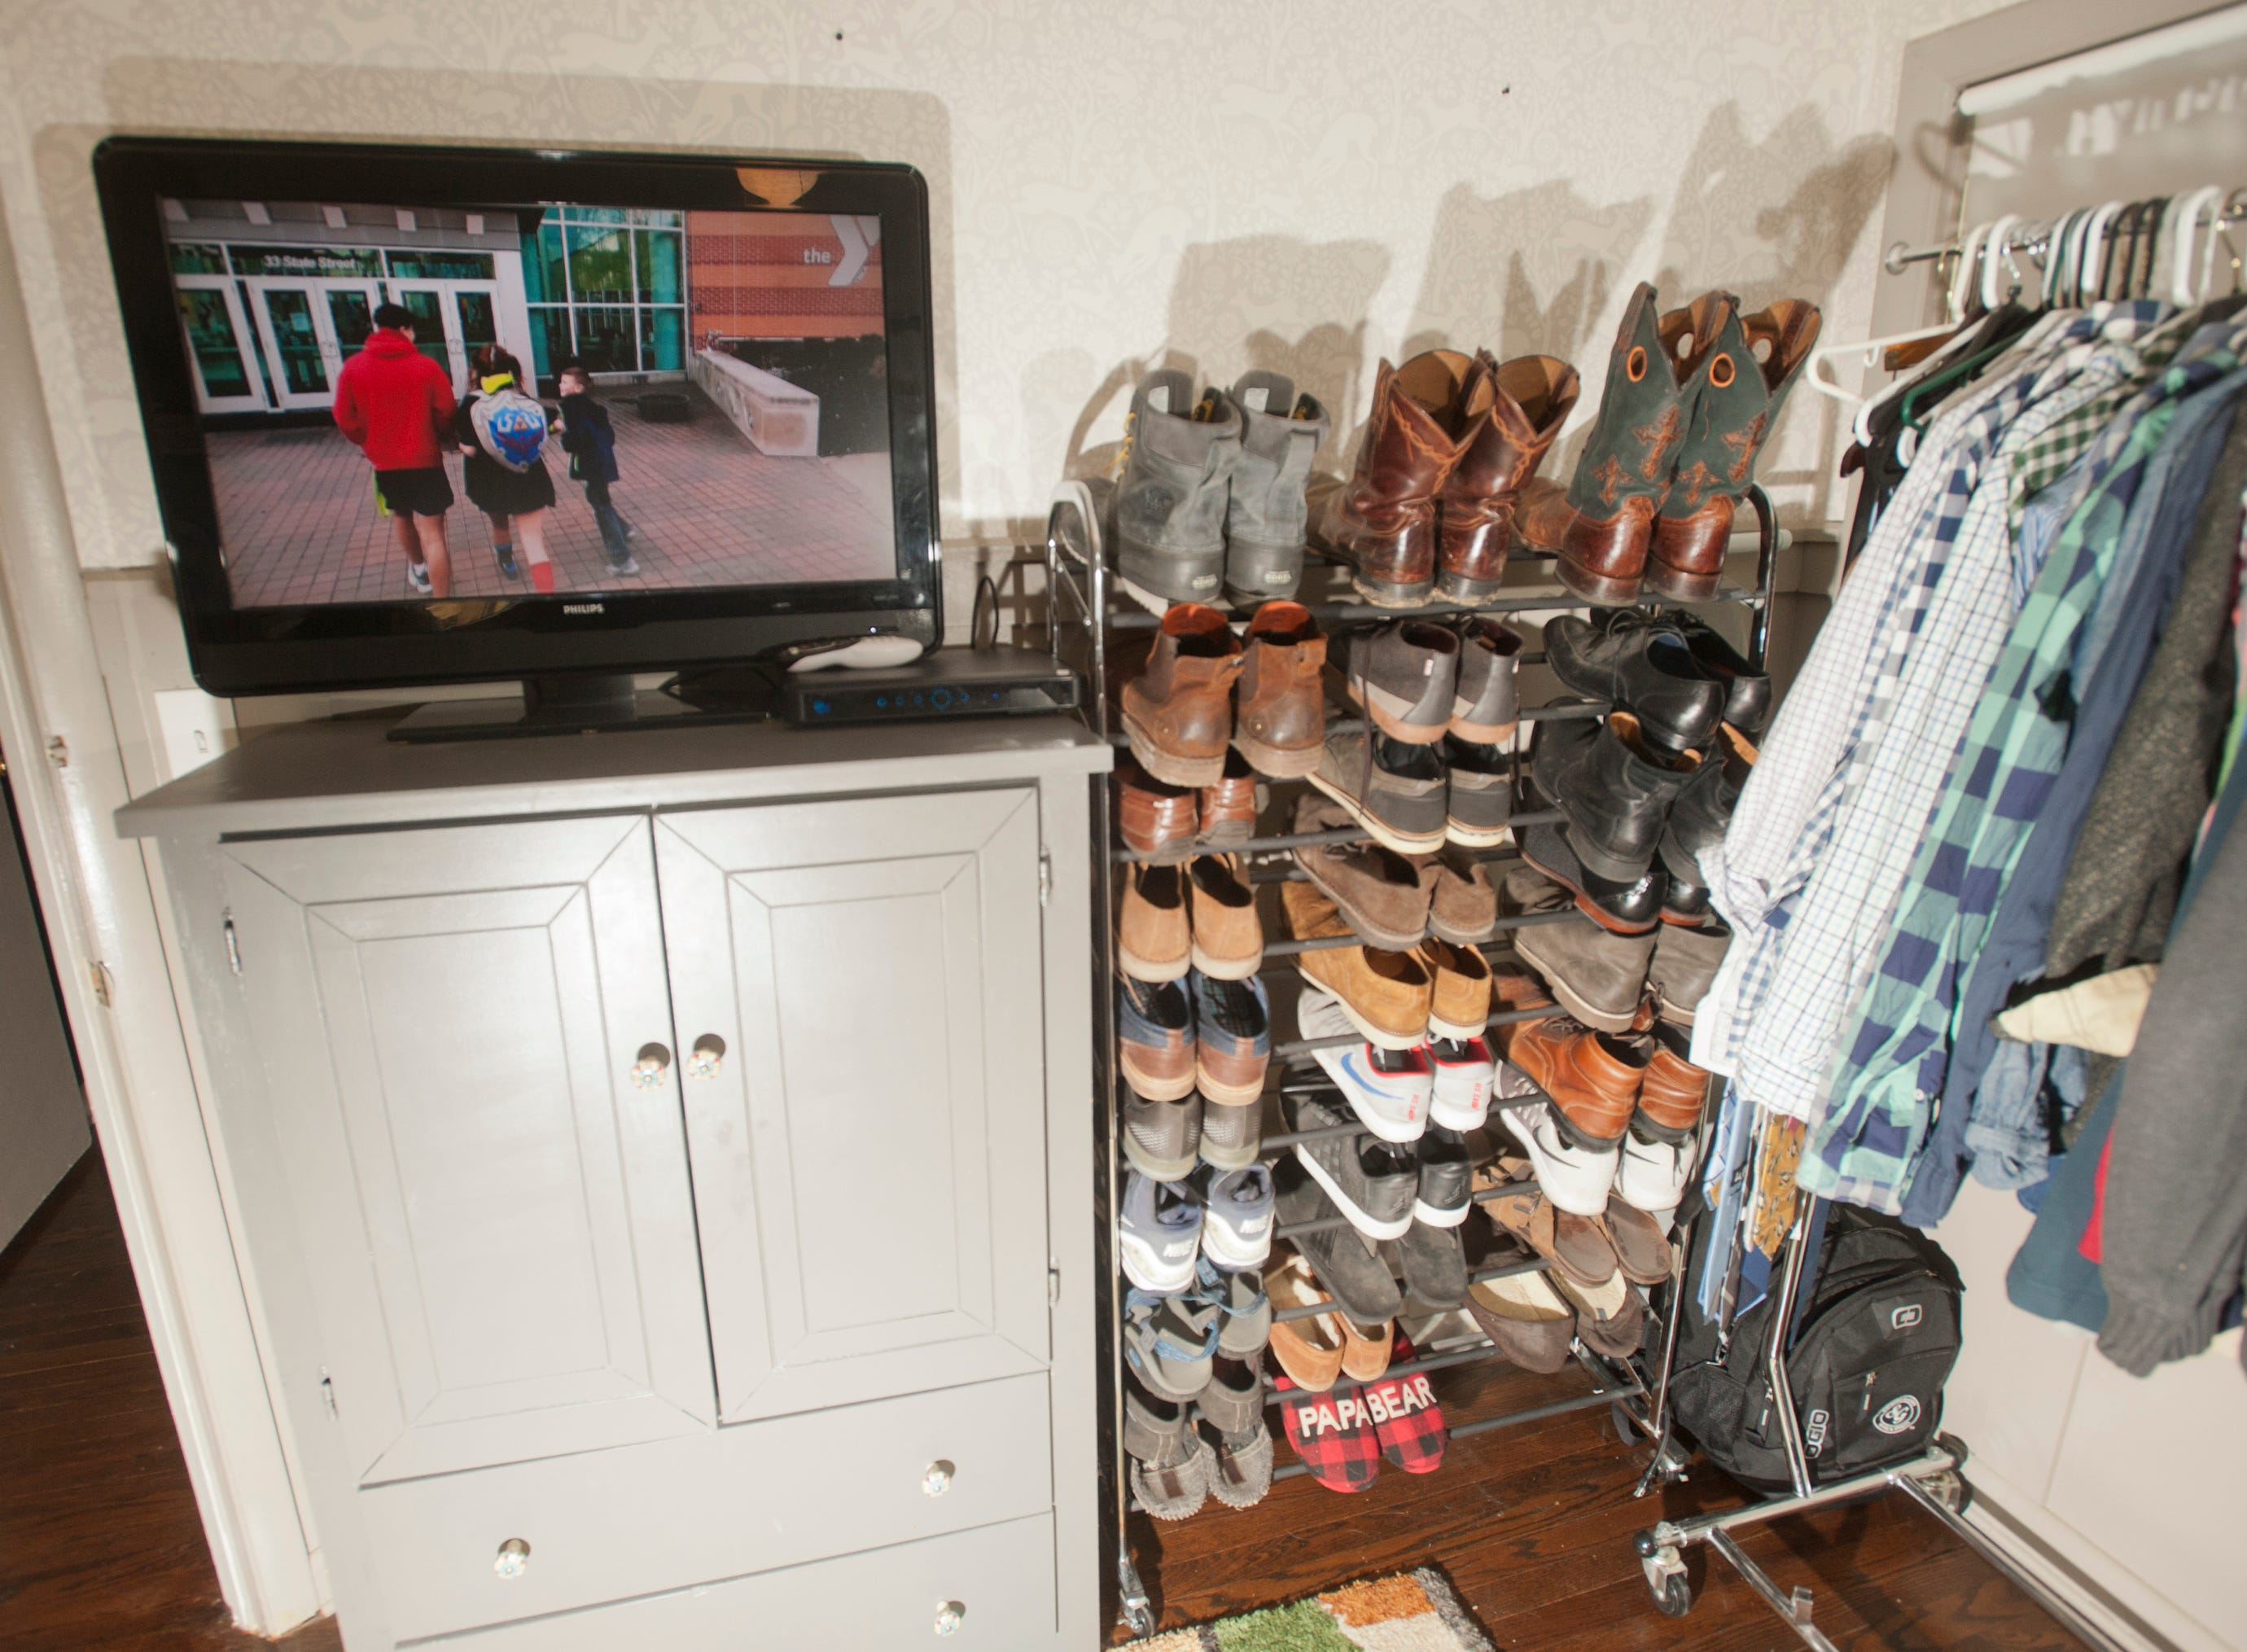 A television sits atop a cabinet next to racks of shoes and clothing.